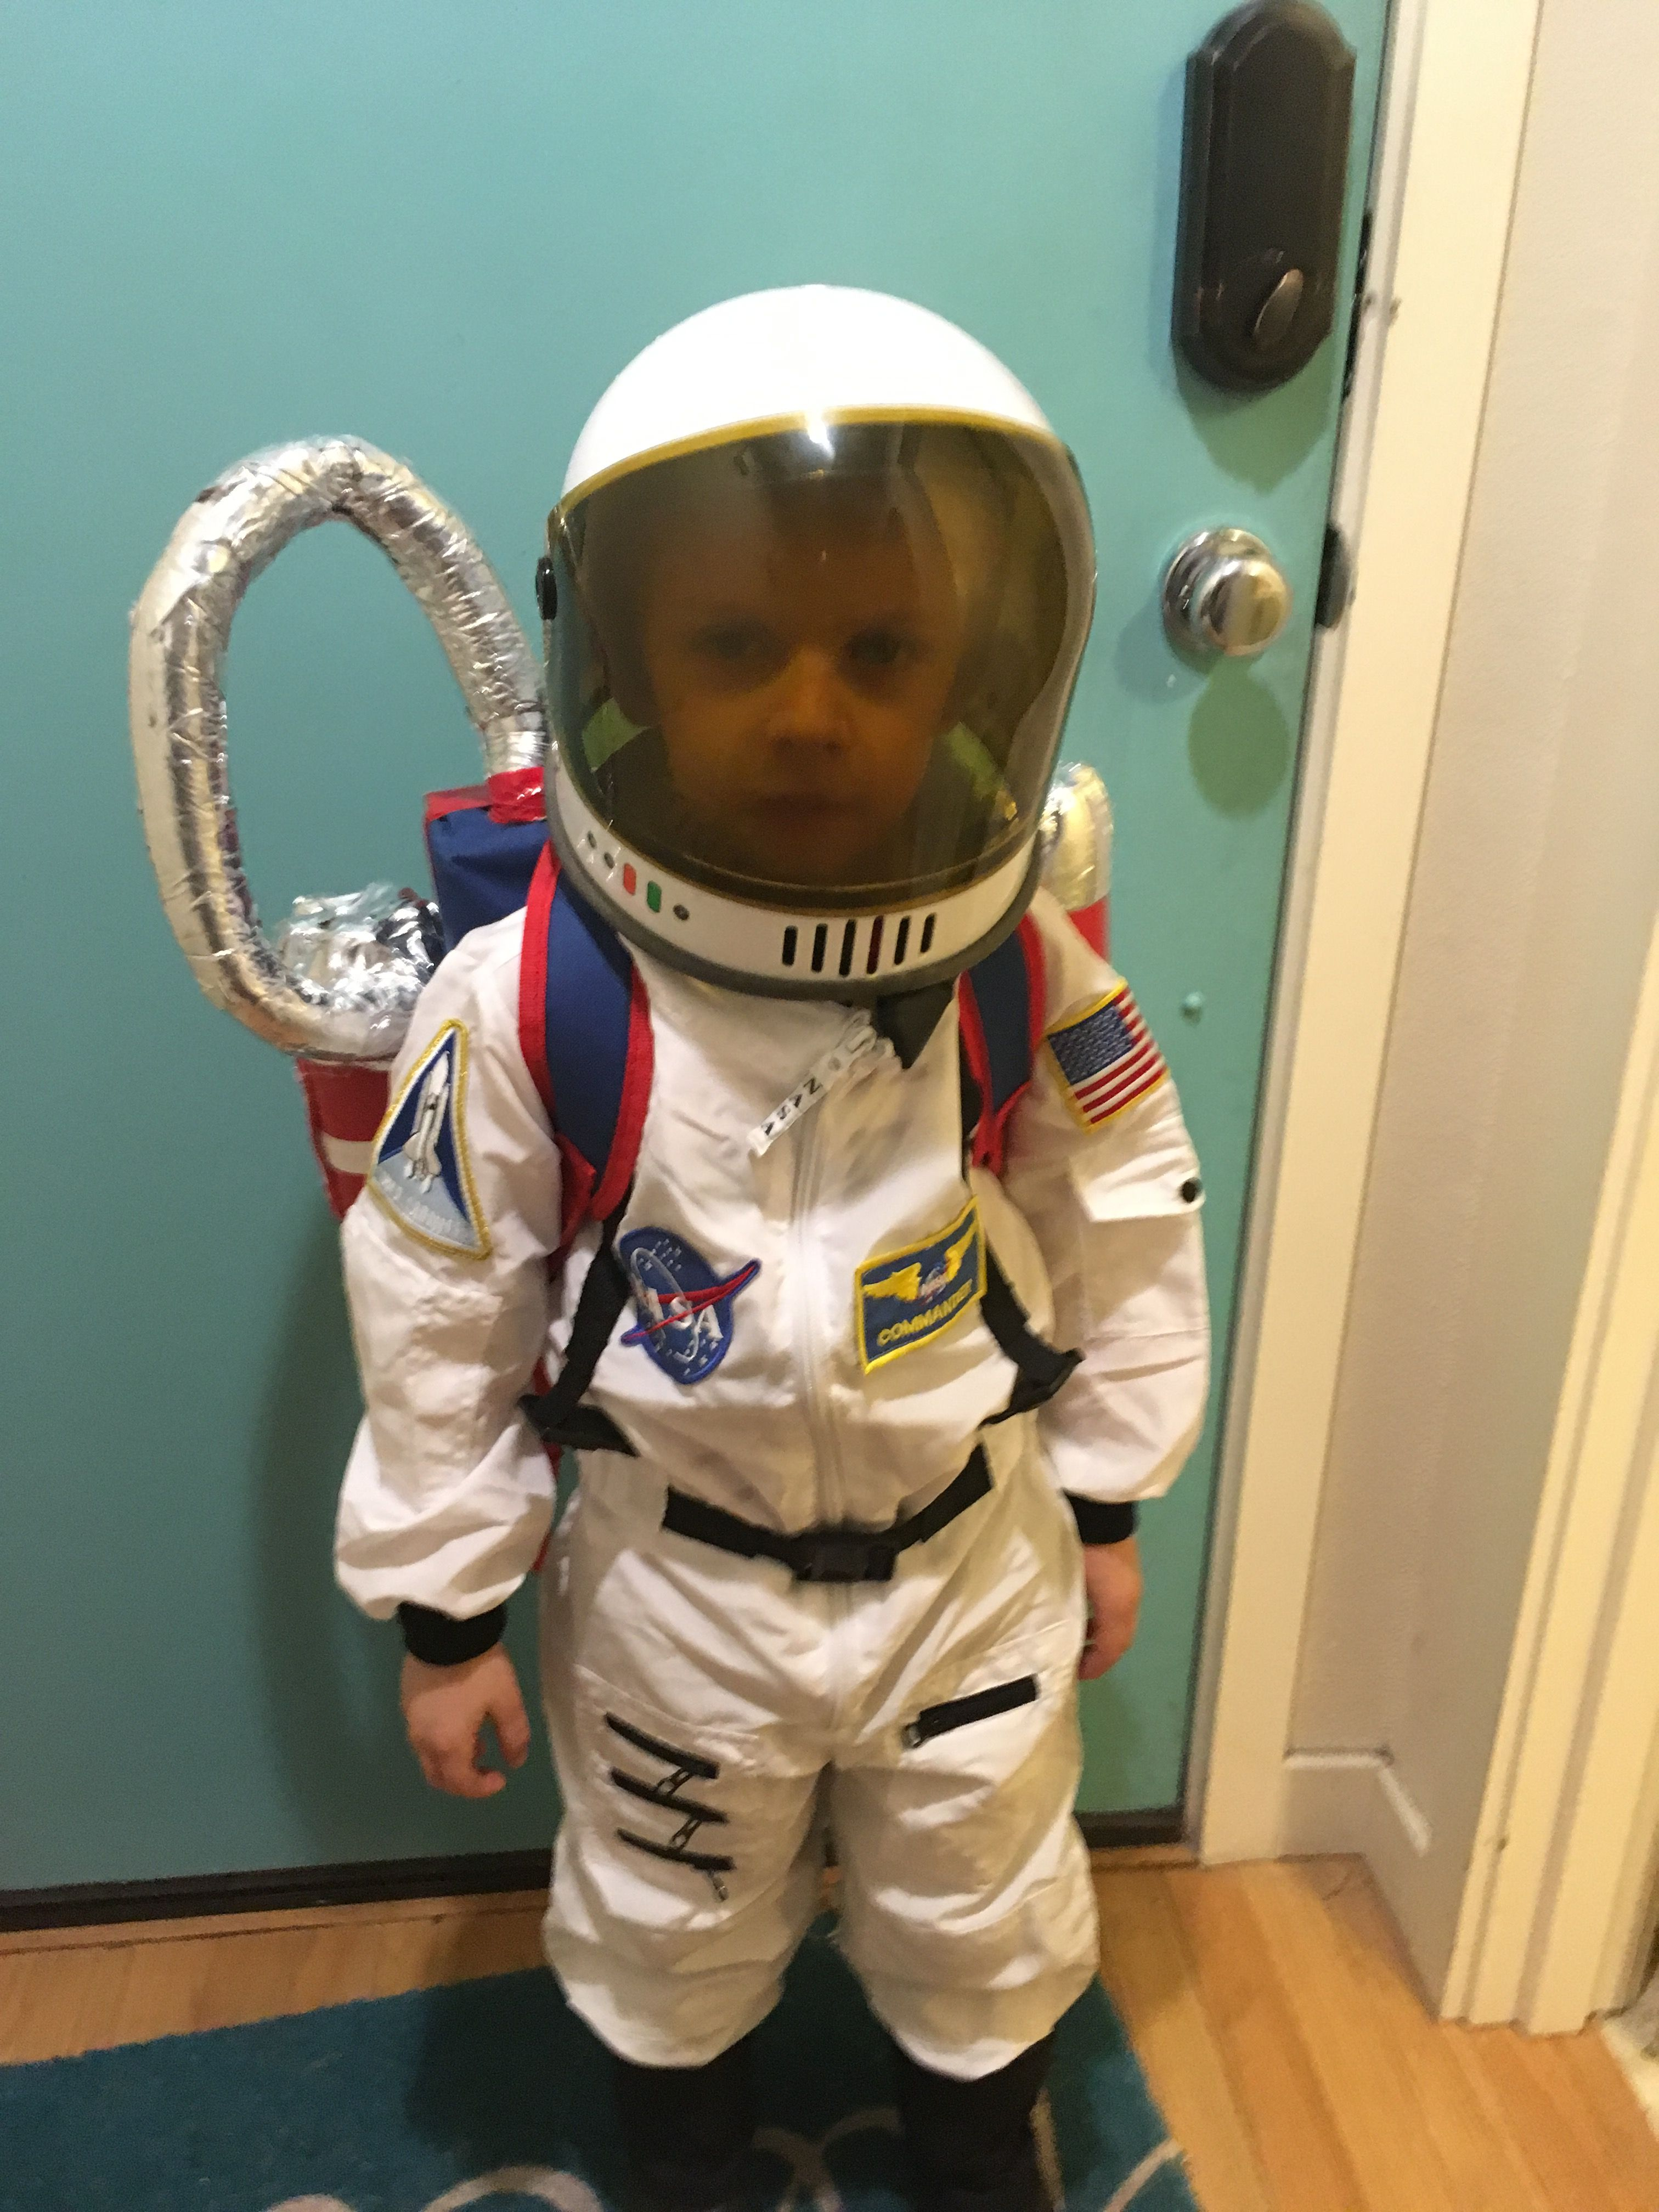 Pin by Ally Hollenbach on NASA Astronaut costume